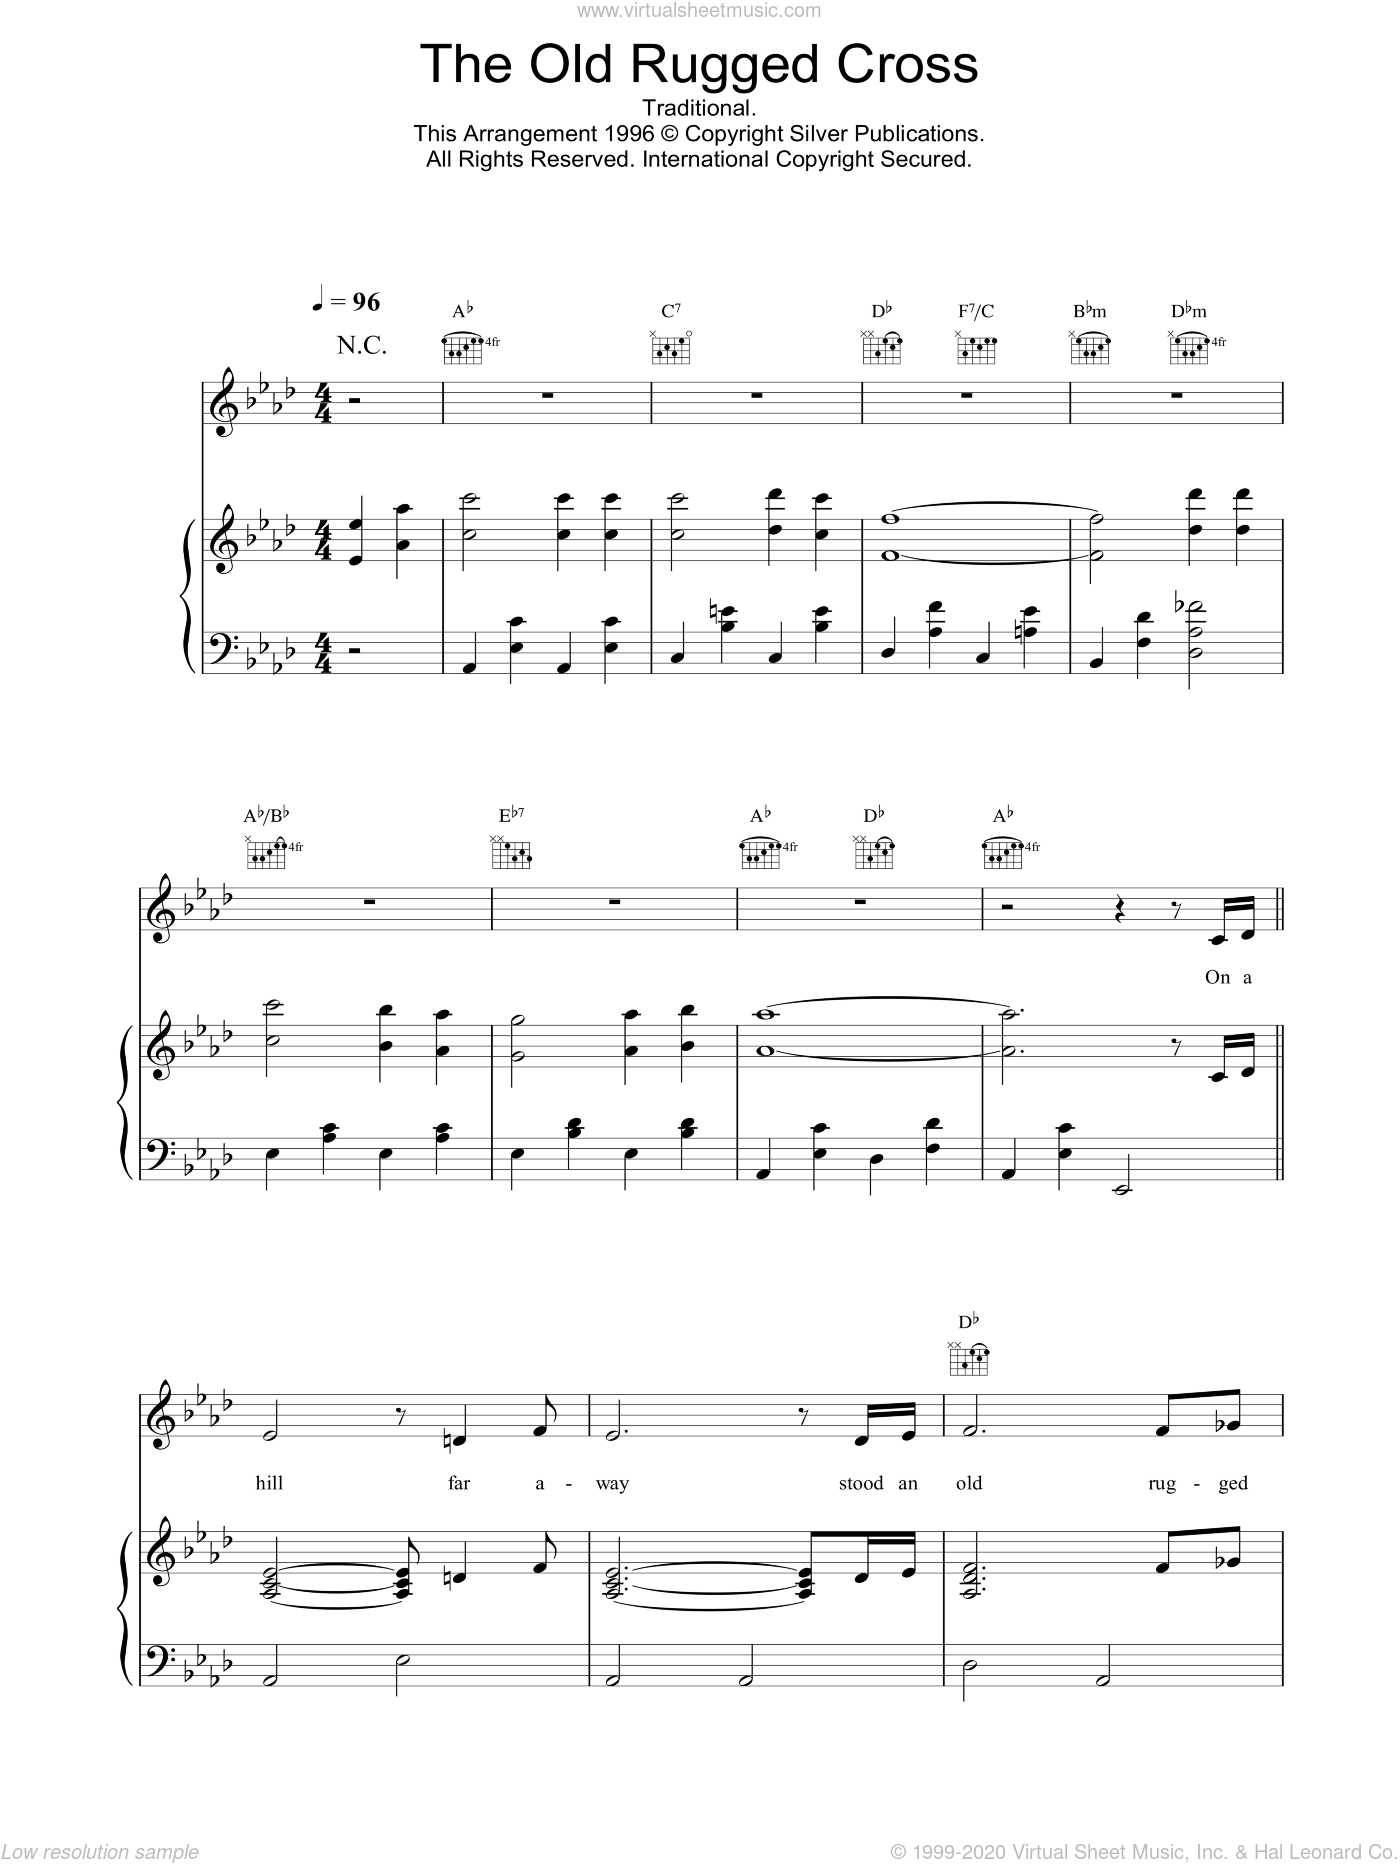 photograph regarding Old Rugged Cross Printable Sheet Music referred to as ODonnell - The Outdated Rugged Cross sheet tunes for voice, piano or guitar